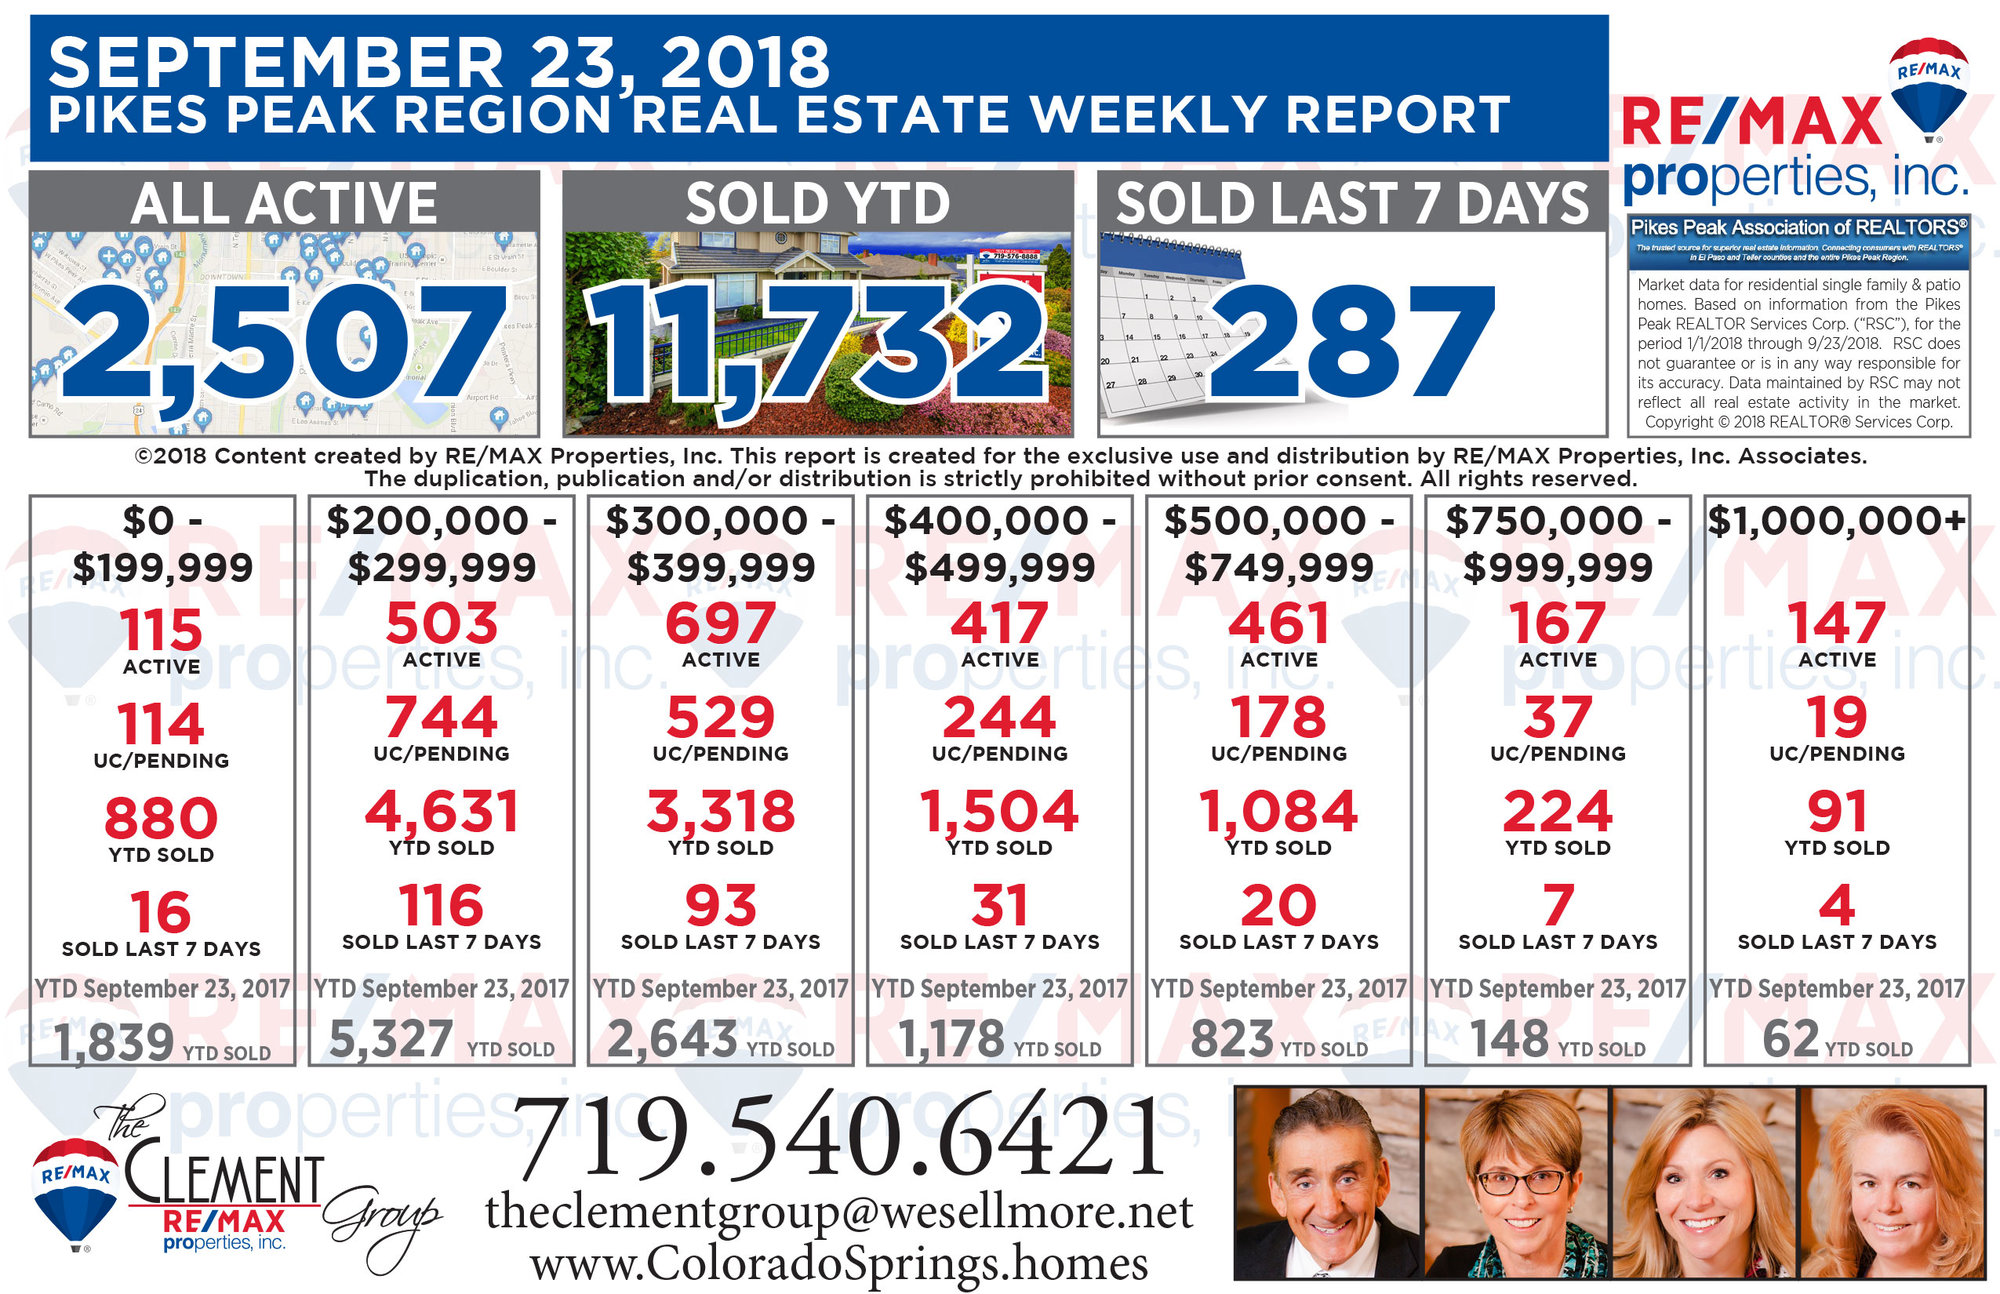 Colorado Springs Real Estate Market Weekly Update - September 23, 2018